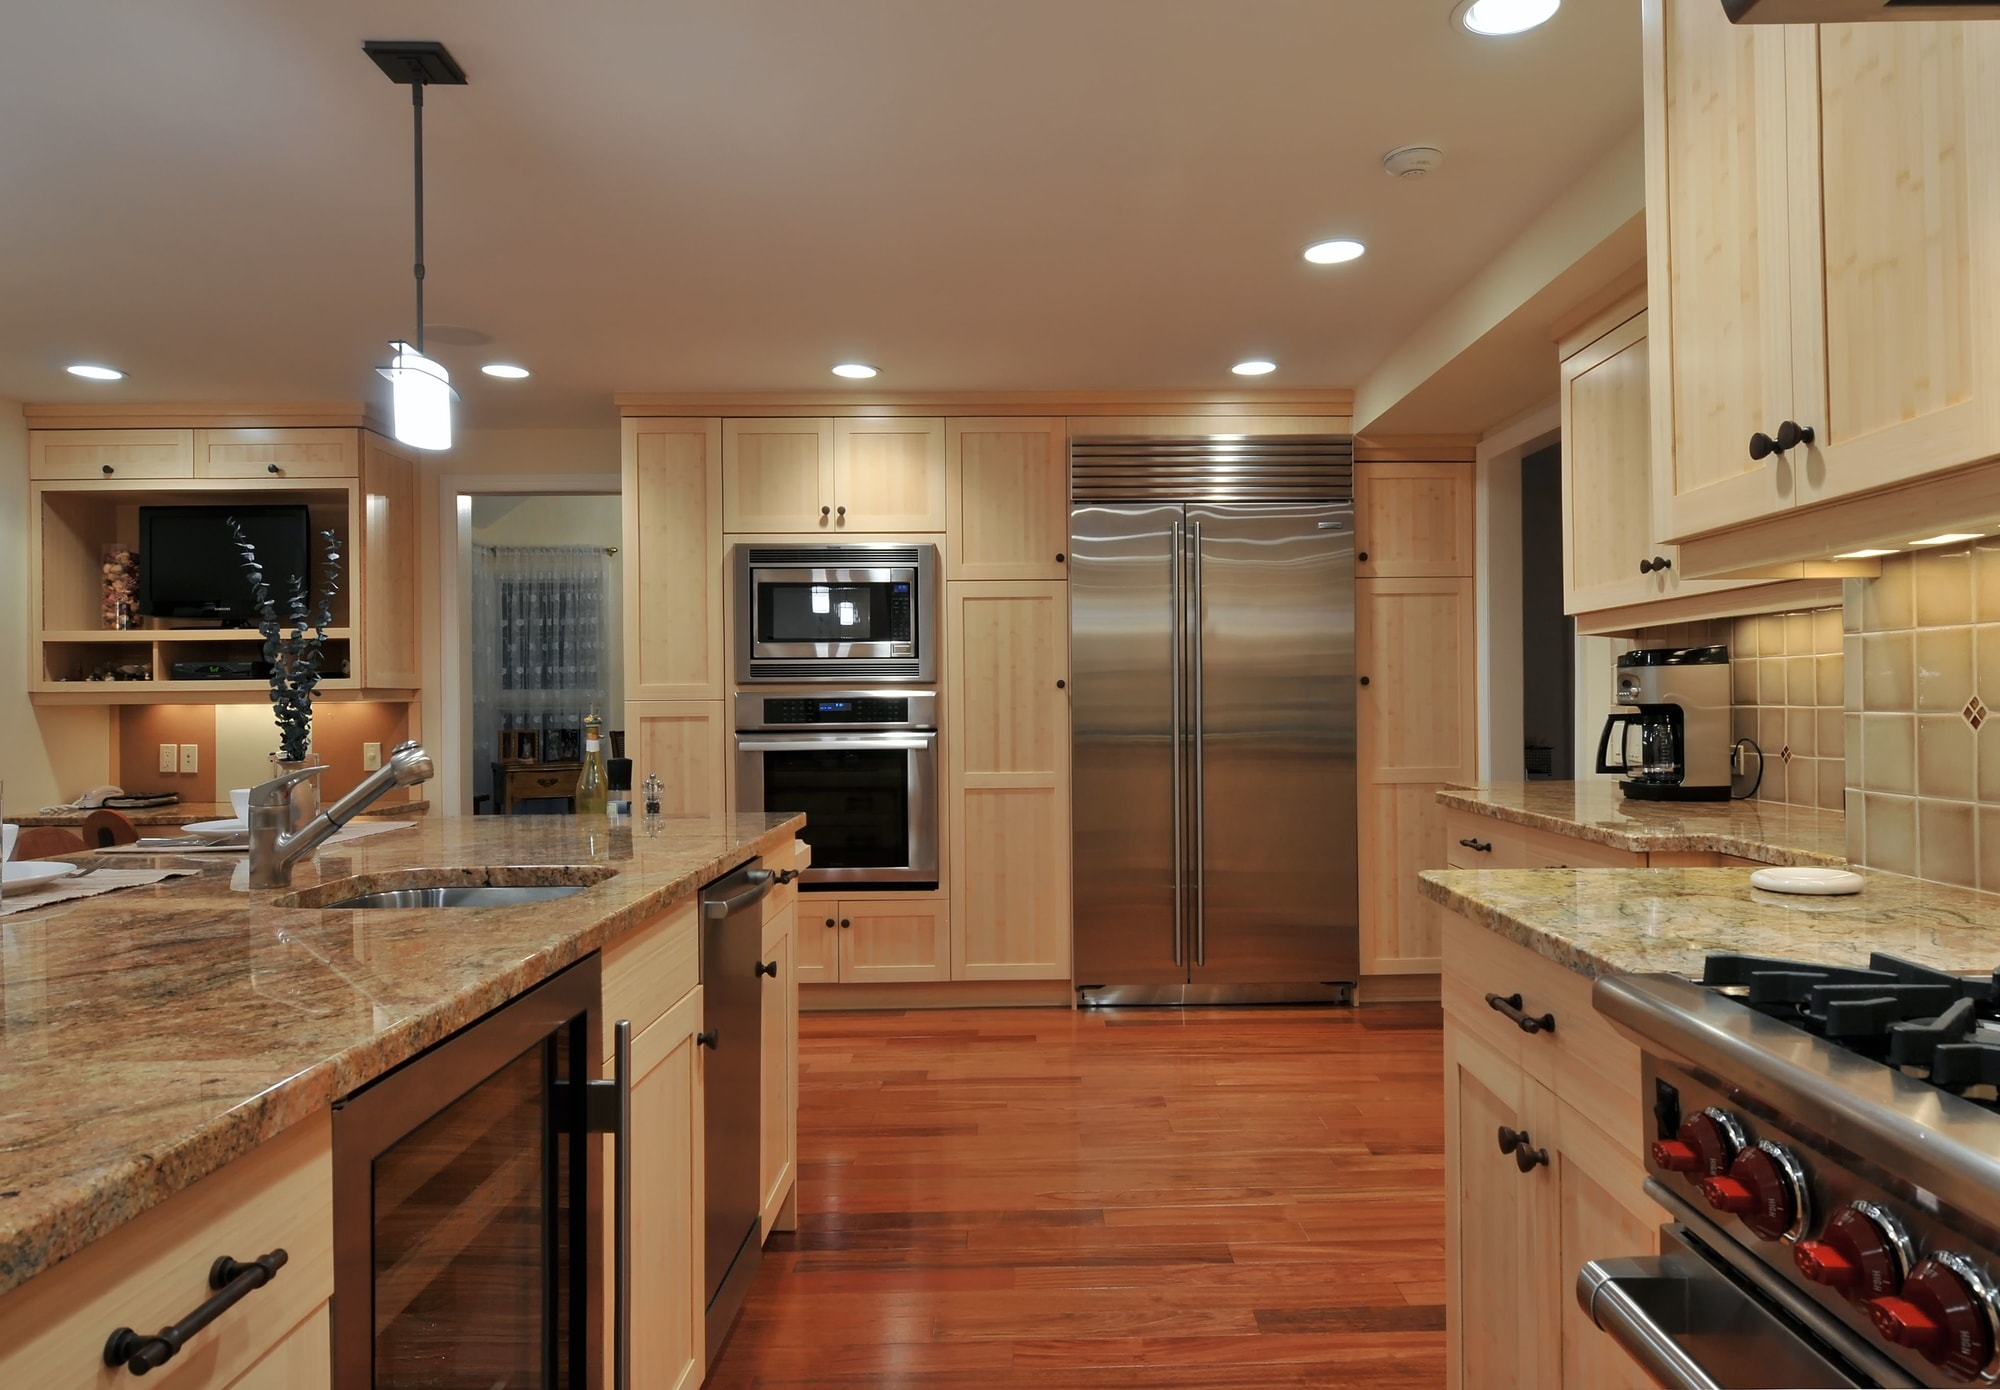 Transitional style kitchen with granite counter top